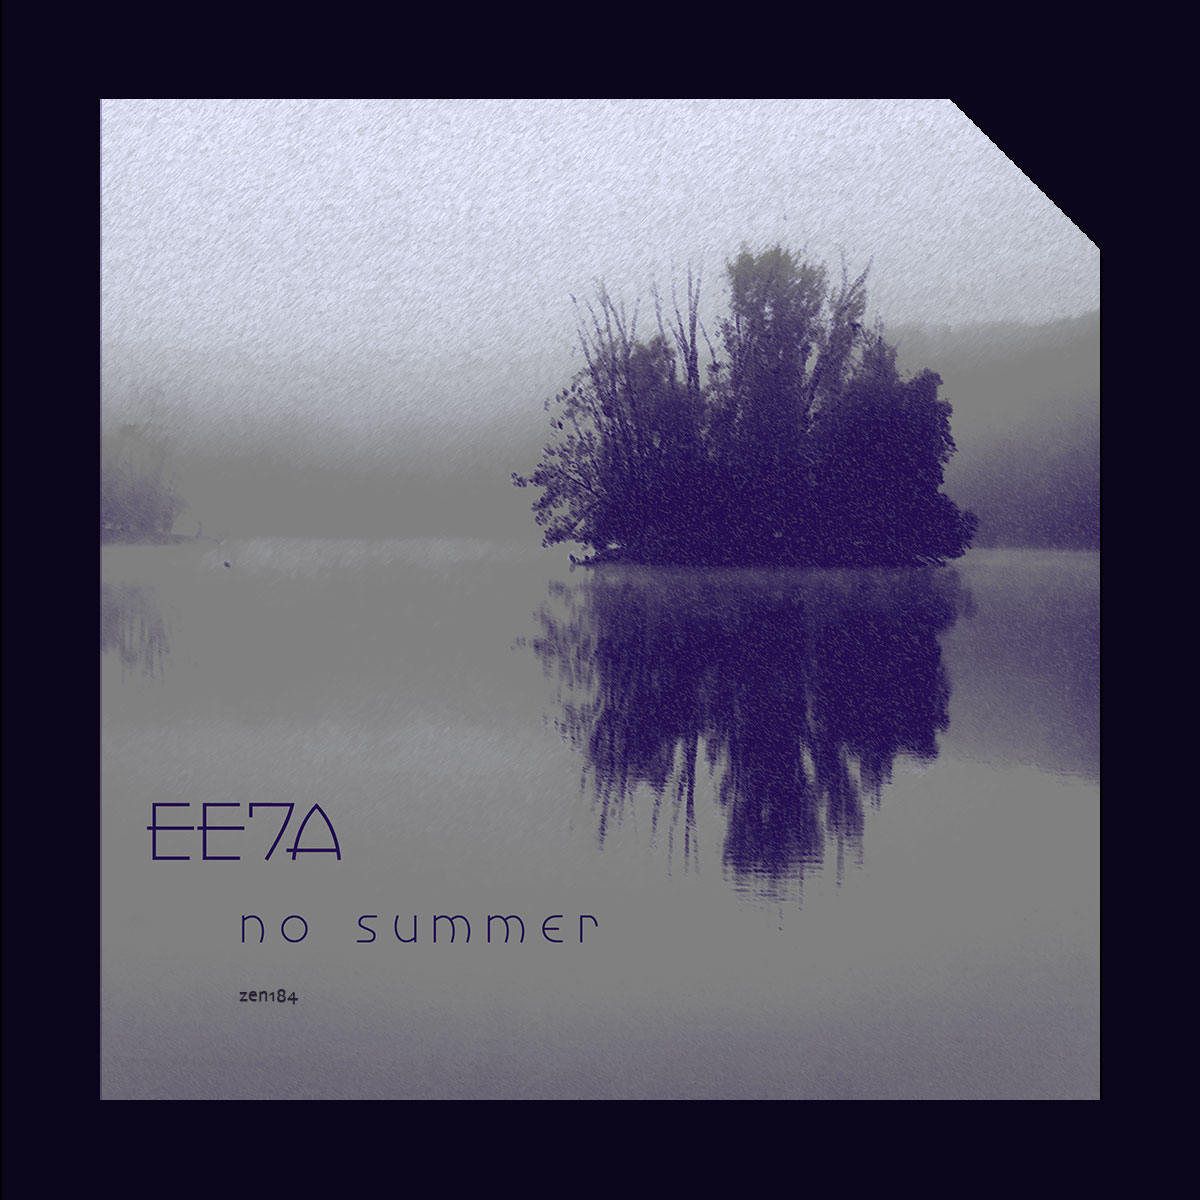 EE7A – No Summer